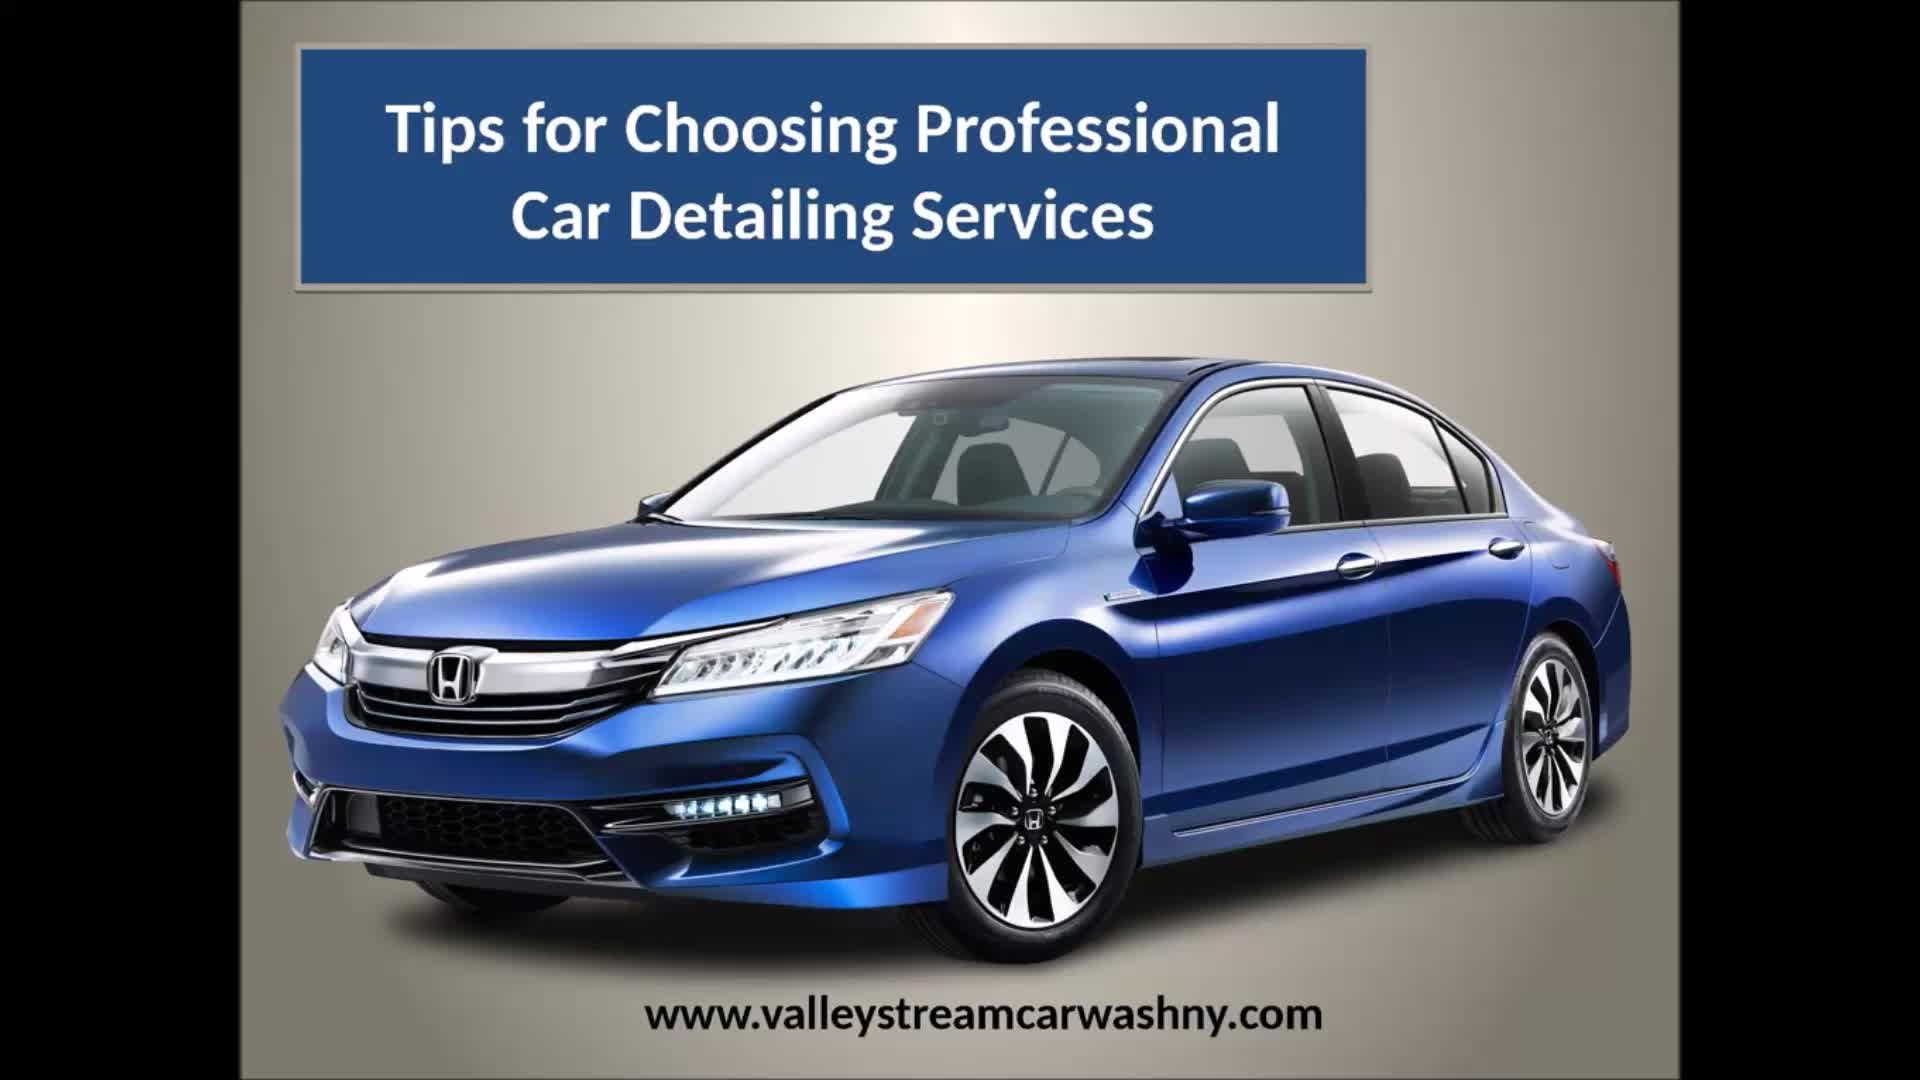 Car Detailing Services Provided By Valley Stream Wash NY Are The Most Appropriate Solution For